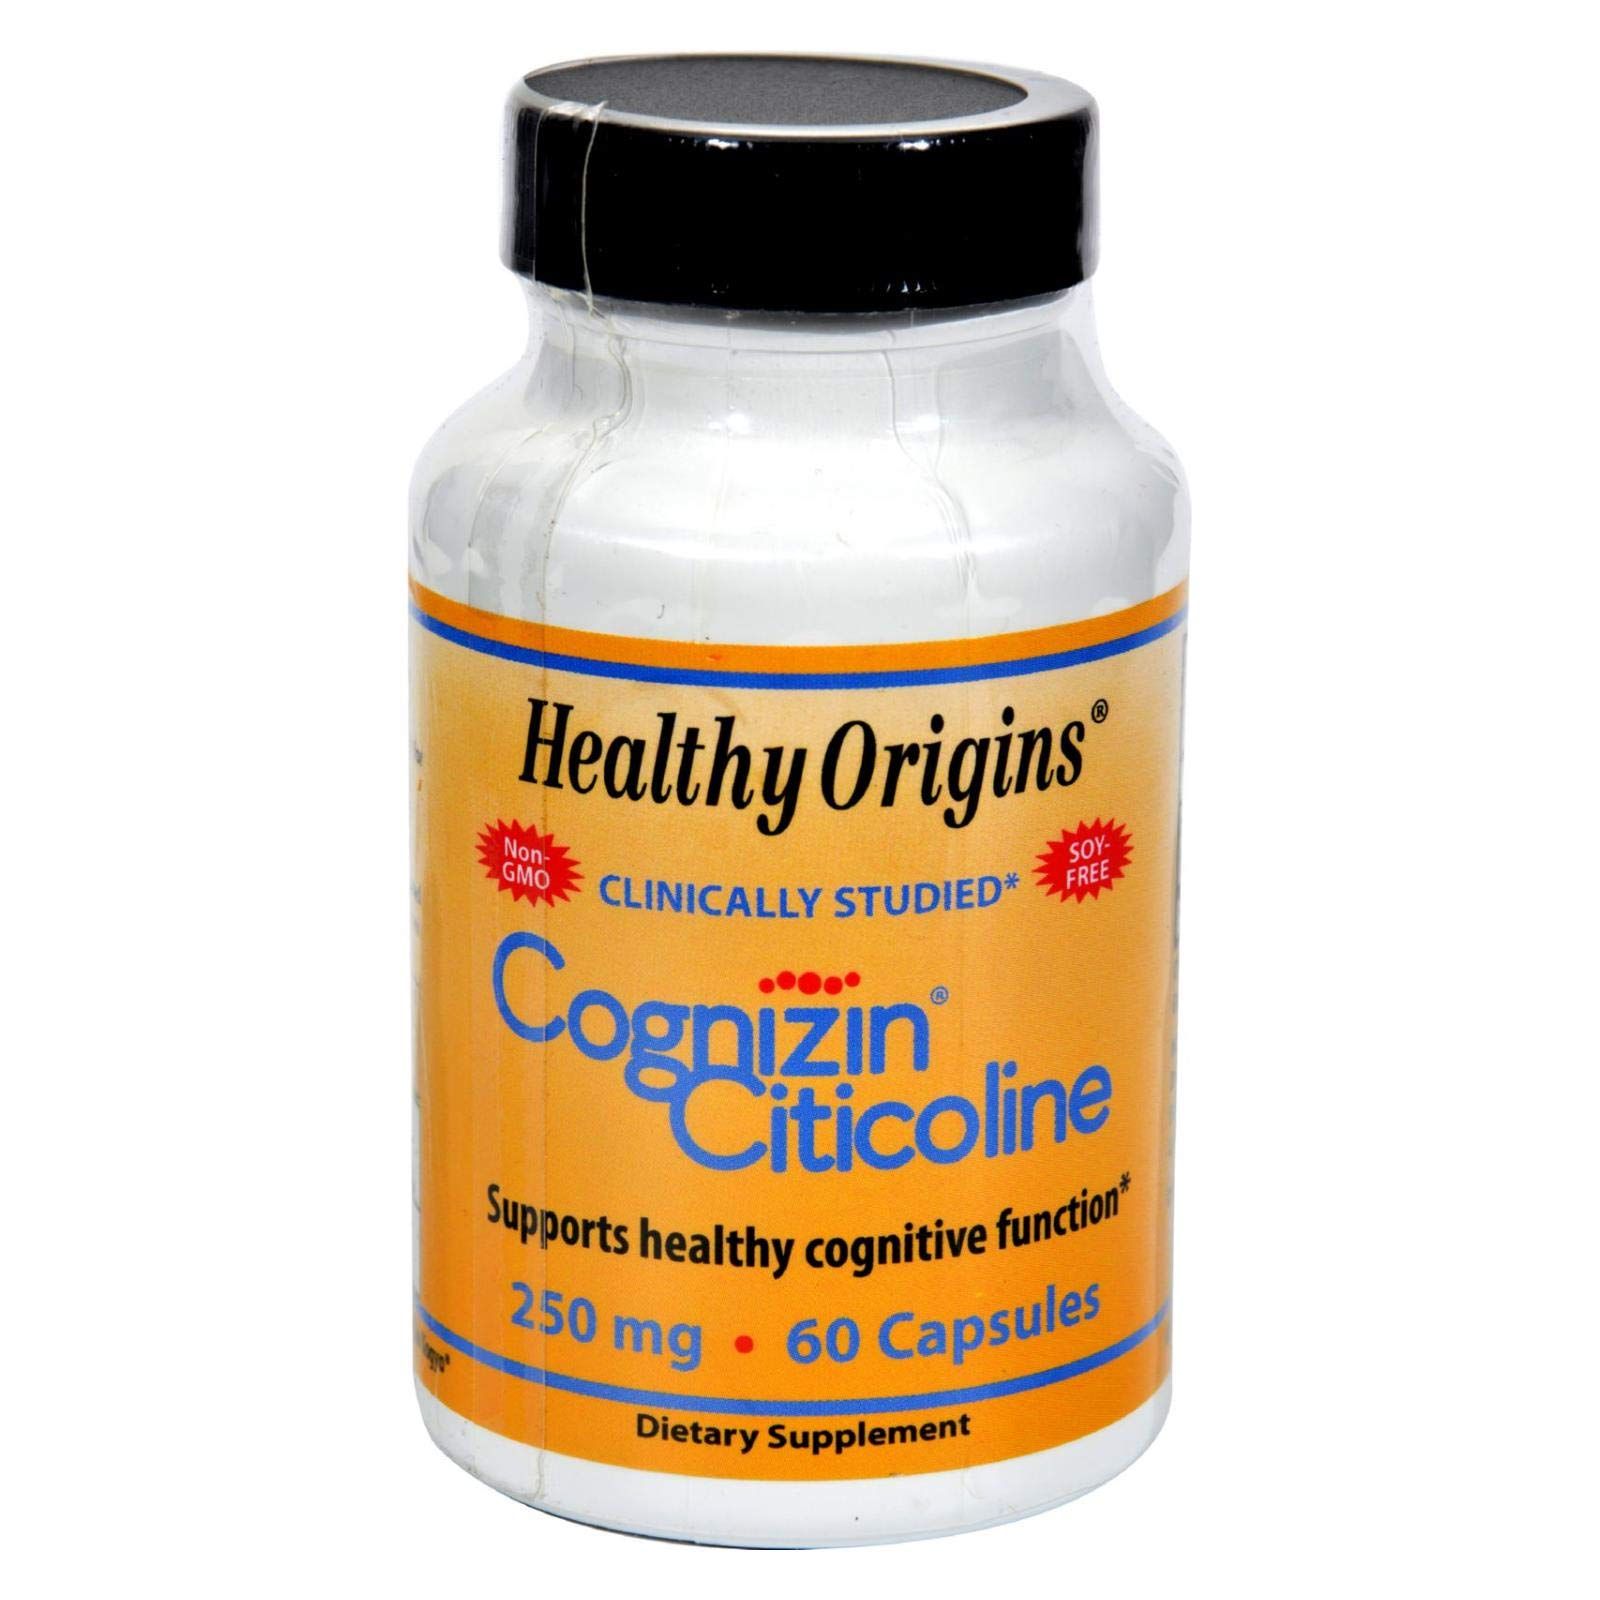 Healthy Origins COGNIZIN(CITICOLINE)250MG, 60 Cap